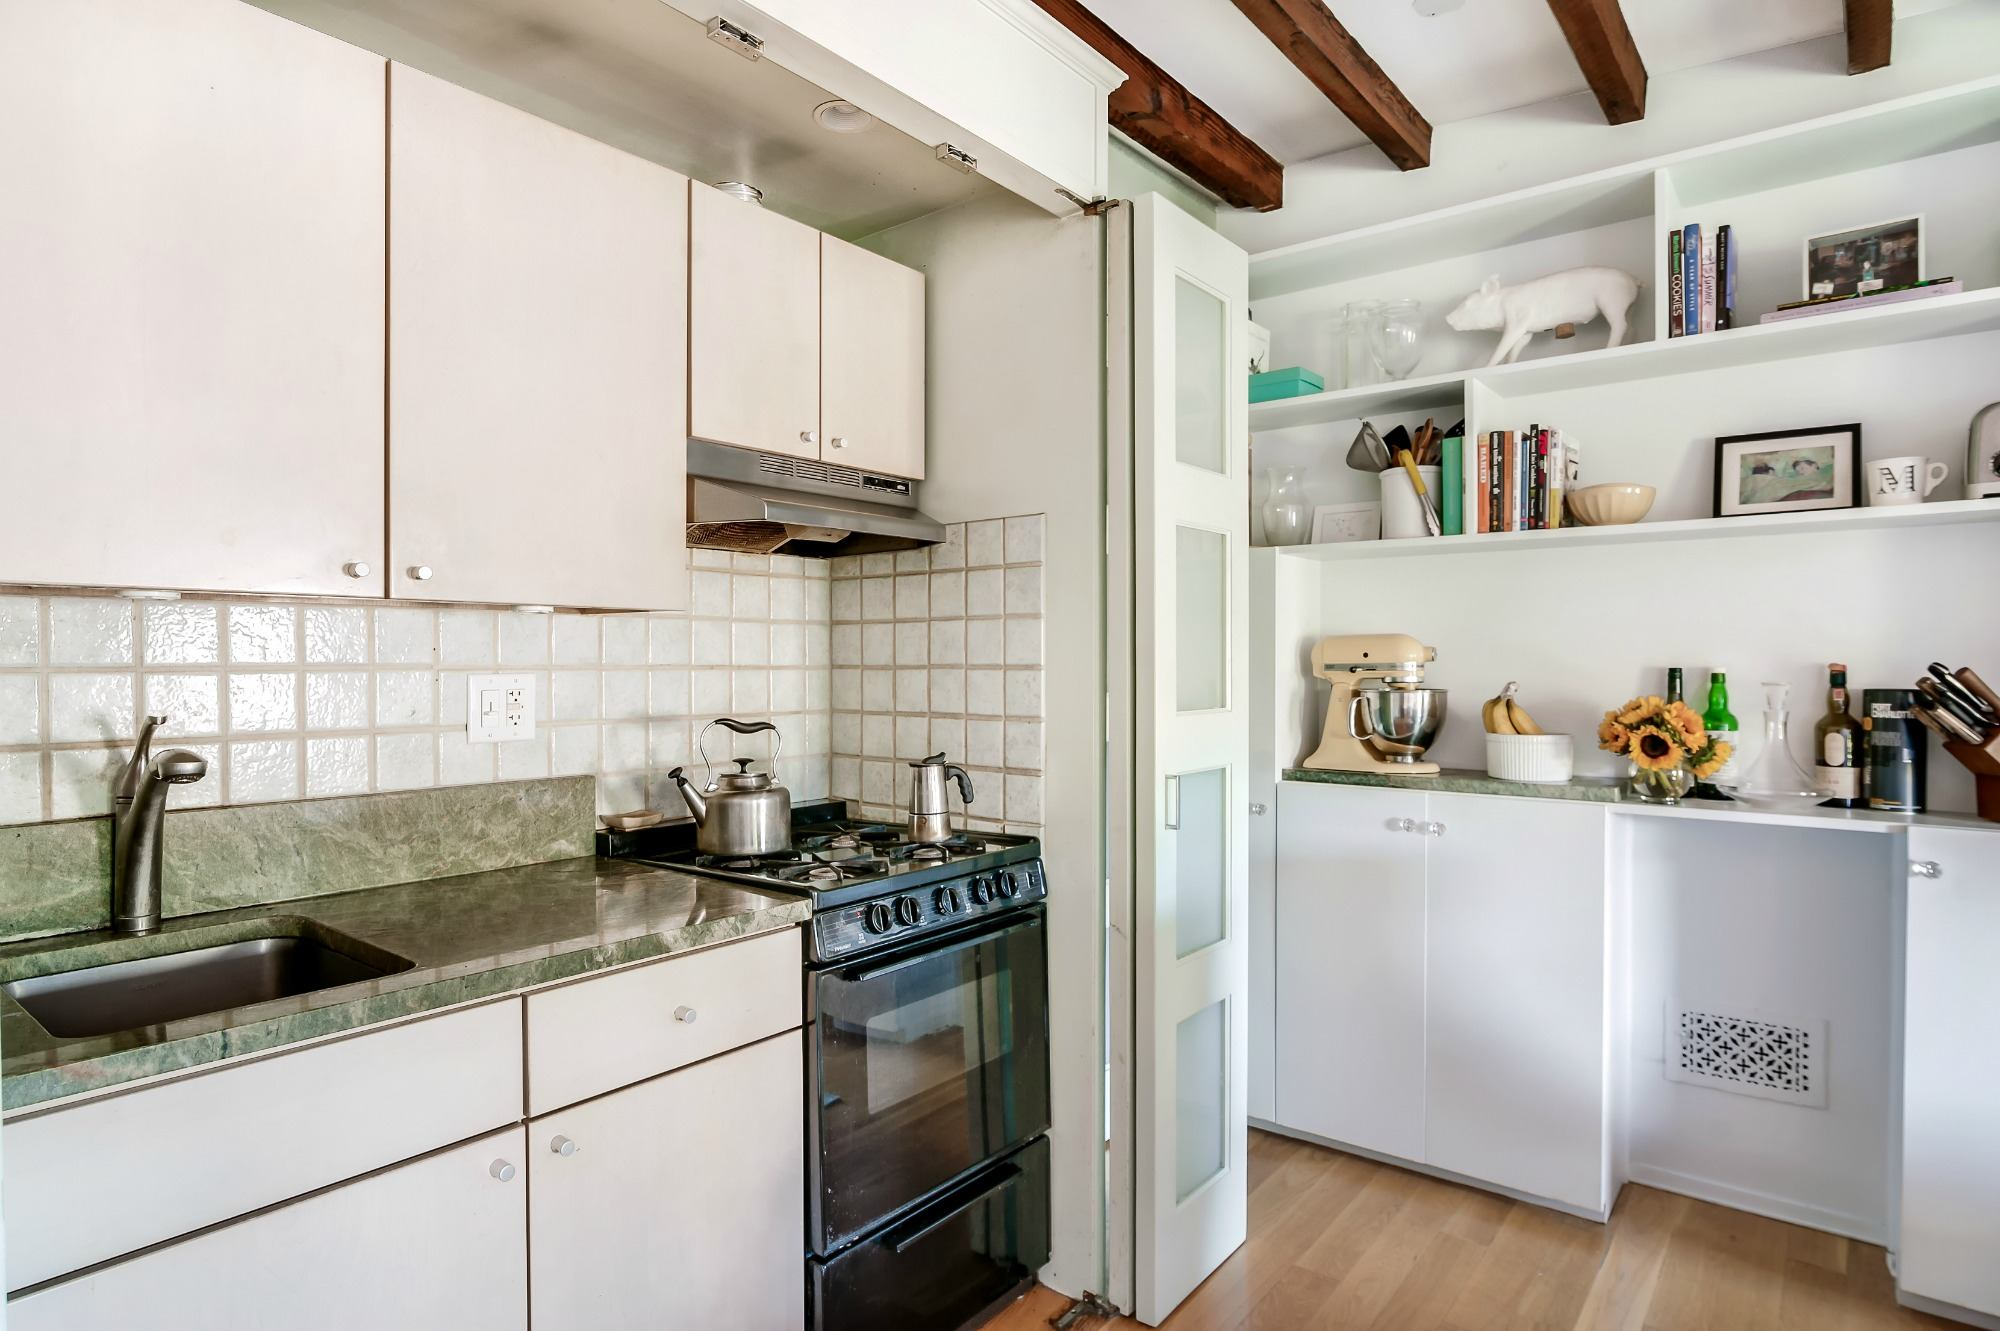 $495K Park Slope brownstone co-op has a roof deck and a kitchen that ...